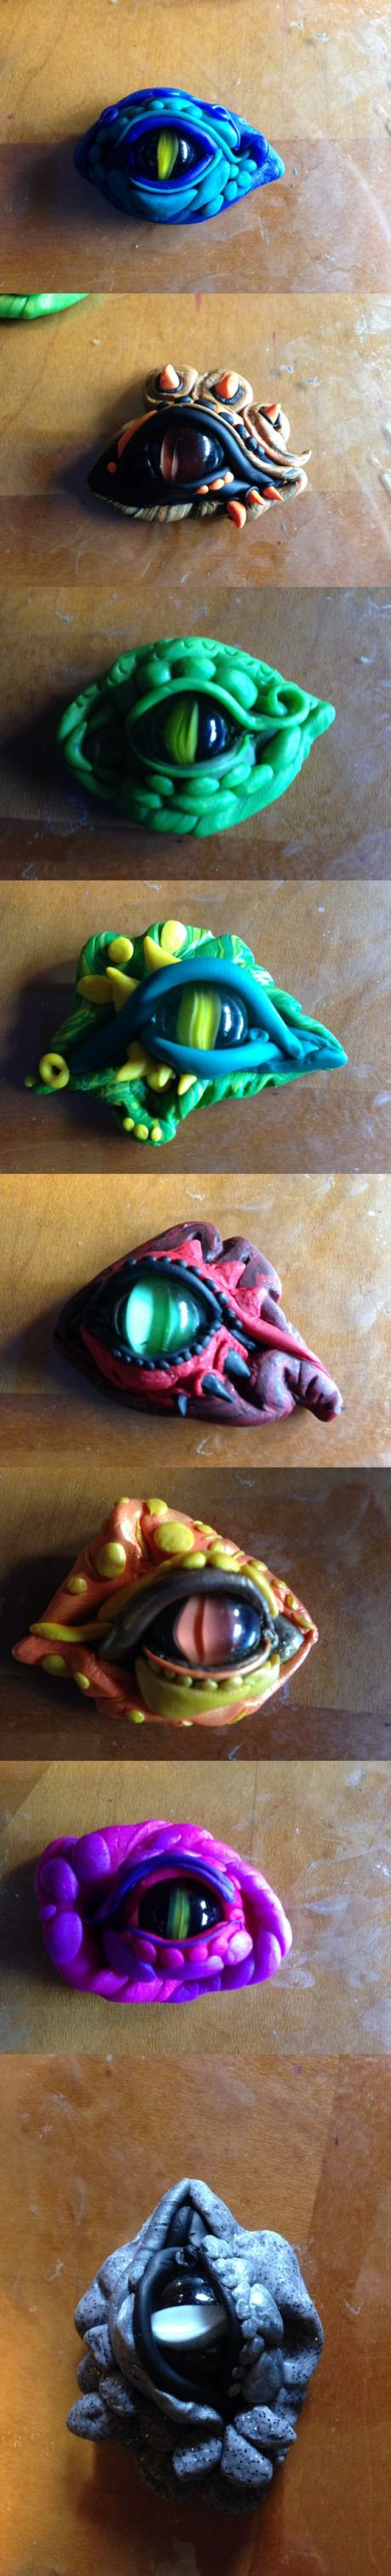 Dragon's eyes made out of clay and marbles. Could be used as eye treatment effect